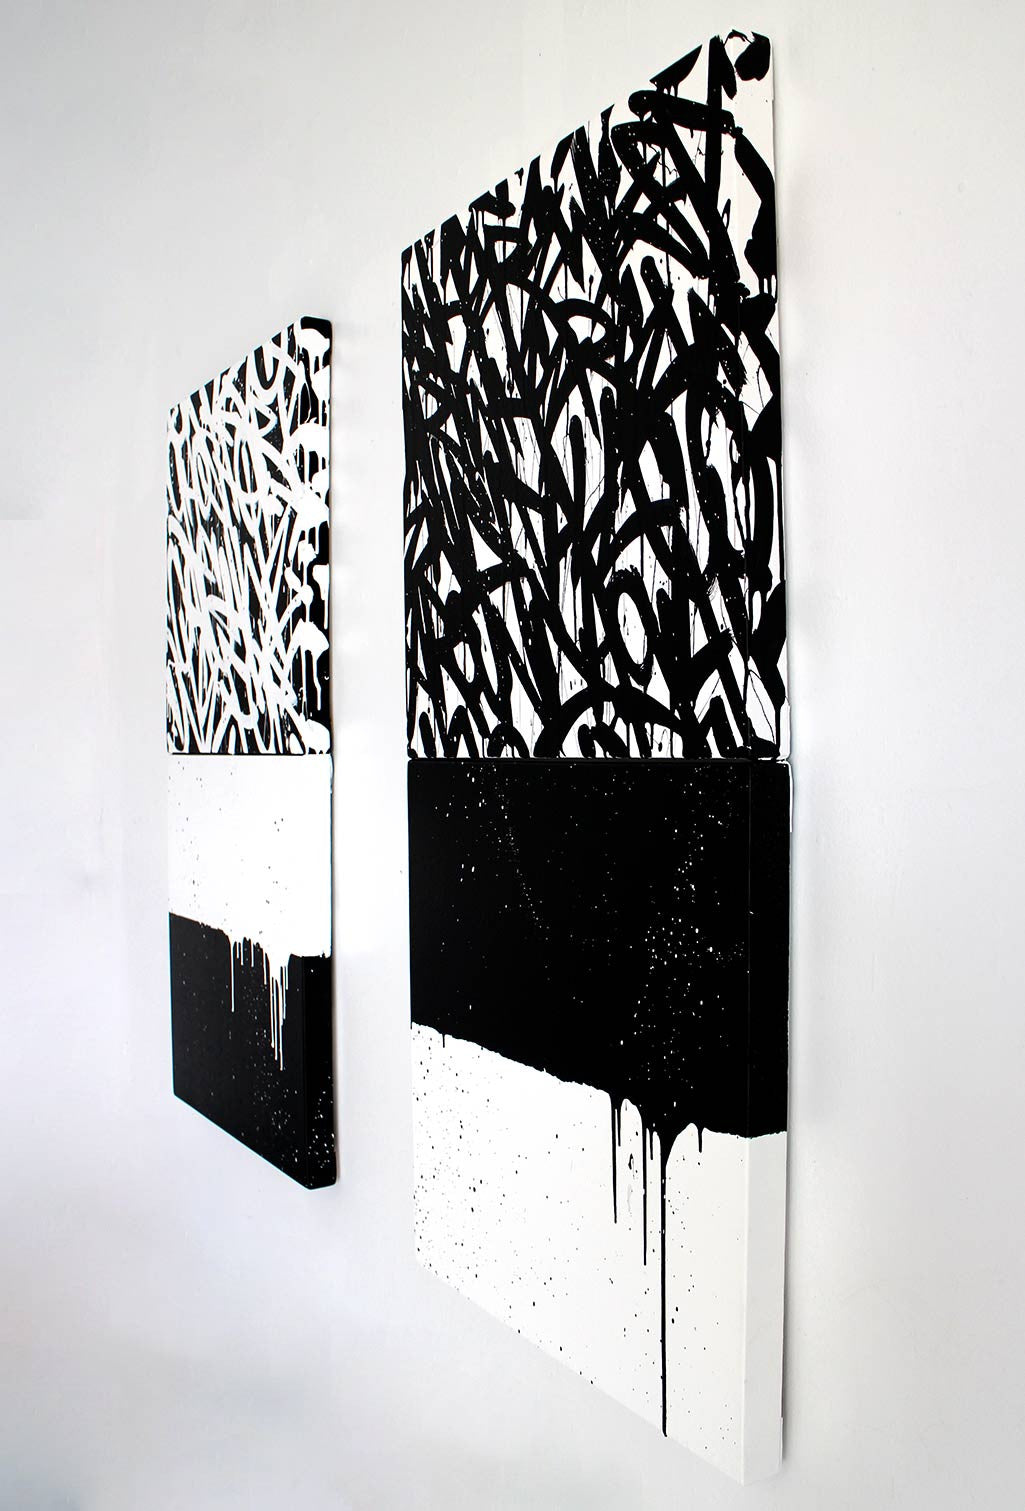 STACKS (LIGHT) - 22X44 Diptych